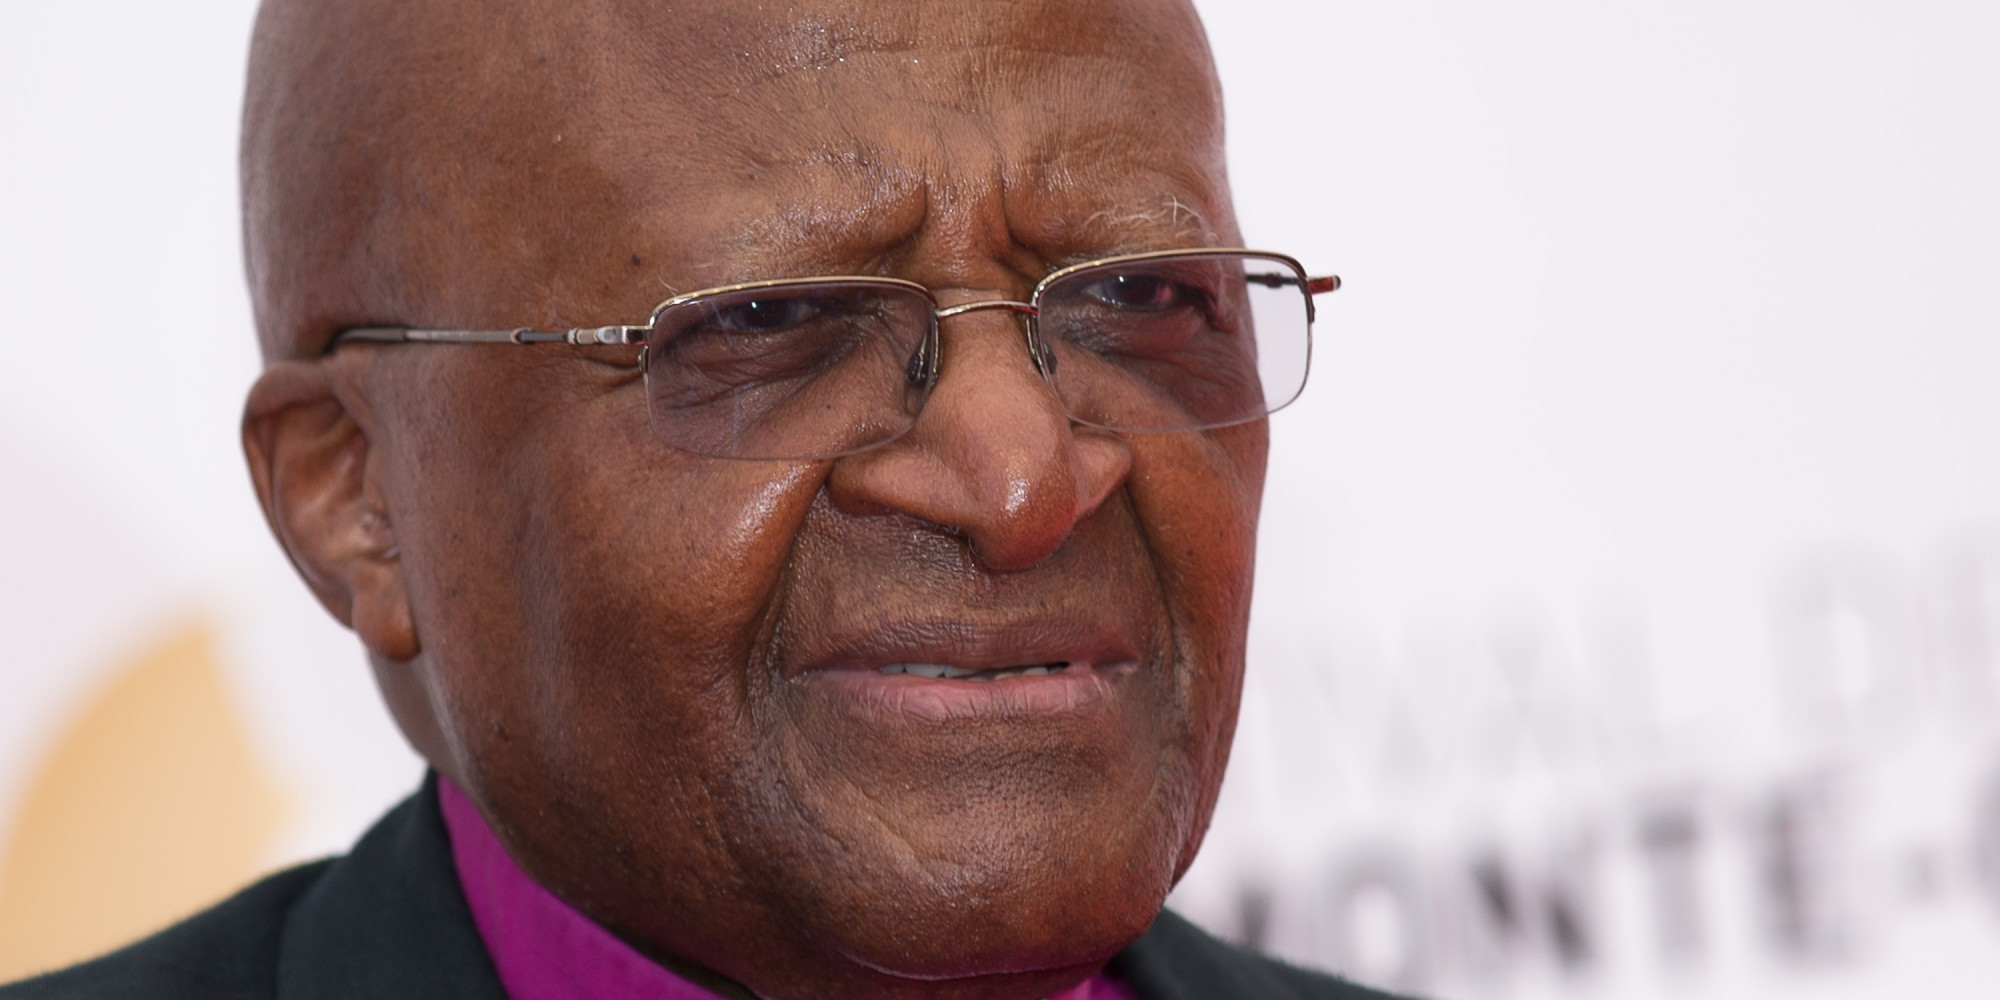 Archbishop Tutu Calls For 'End Of Fossil Fuels Era'